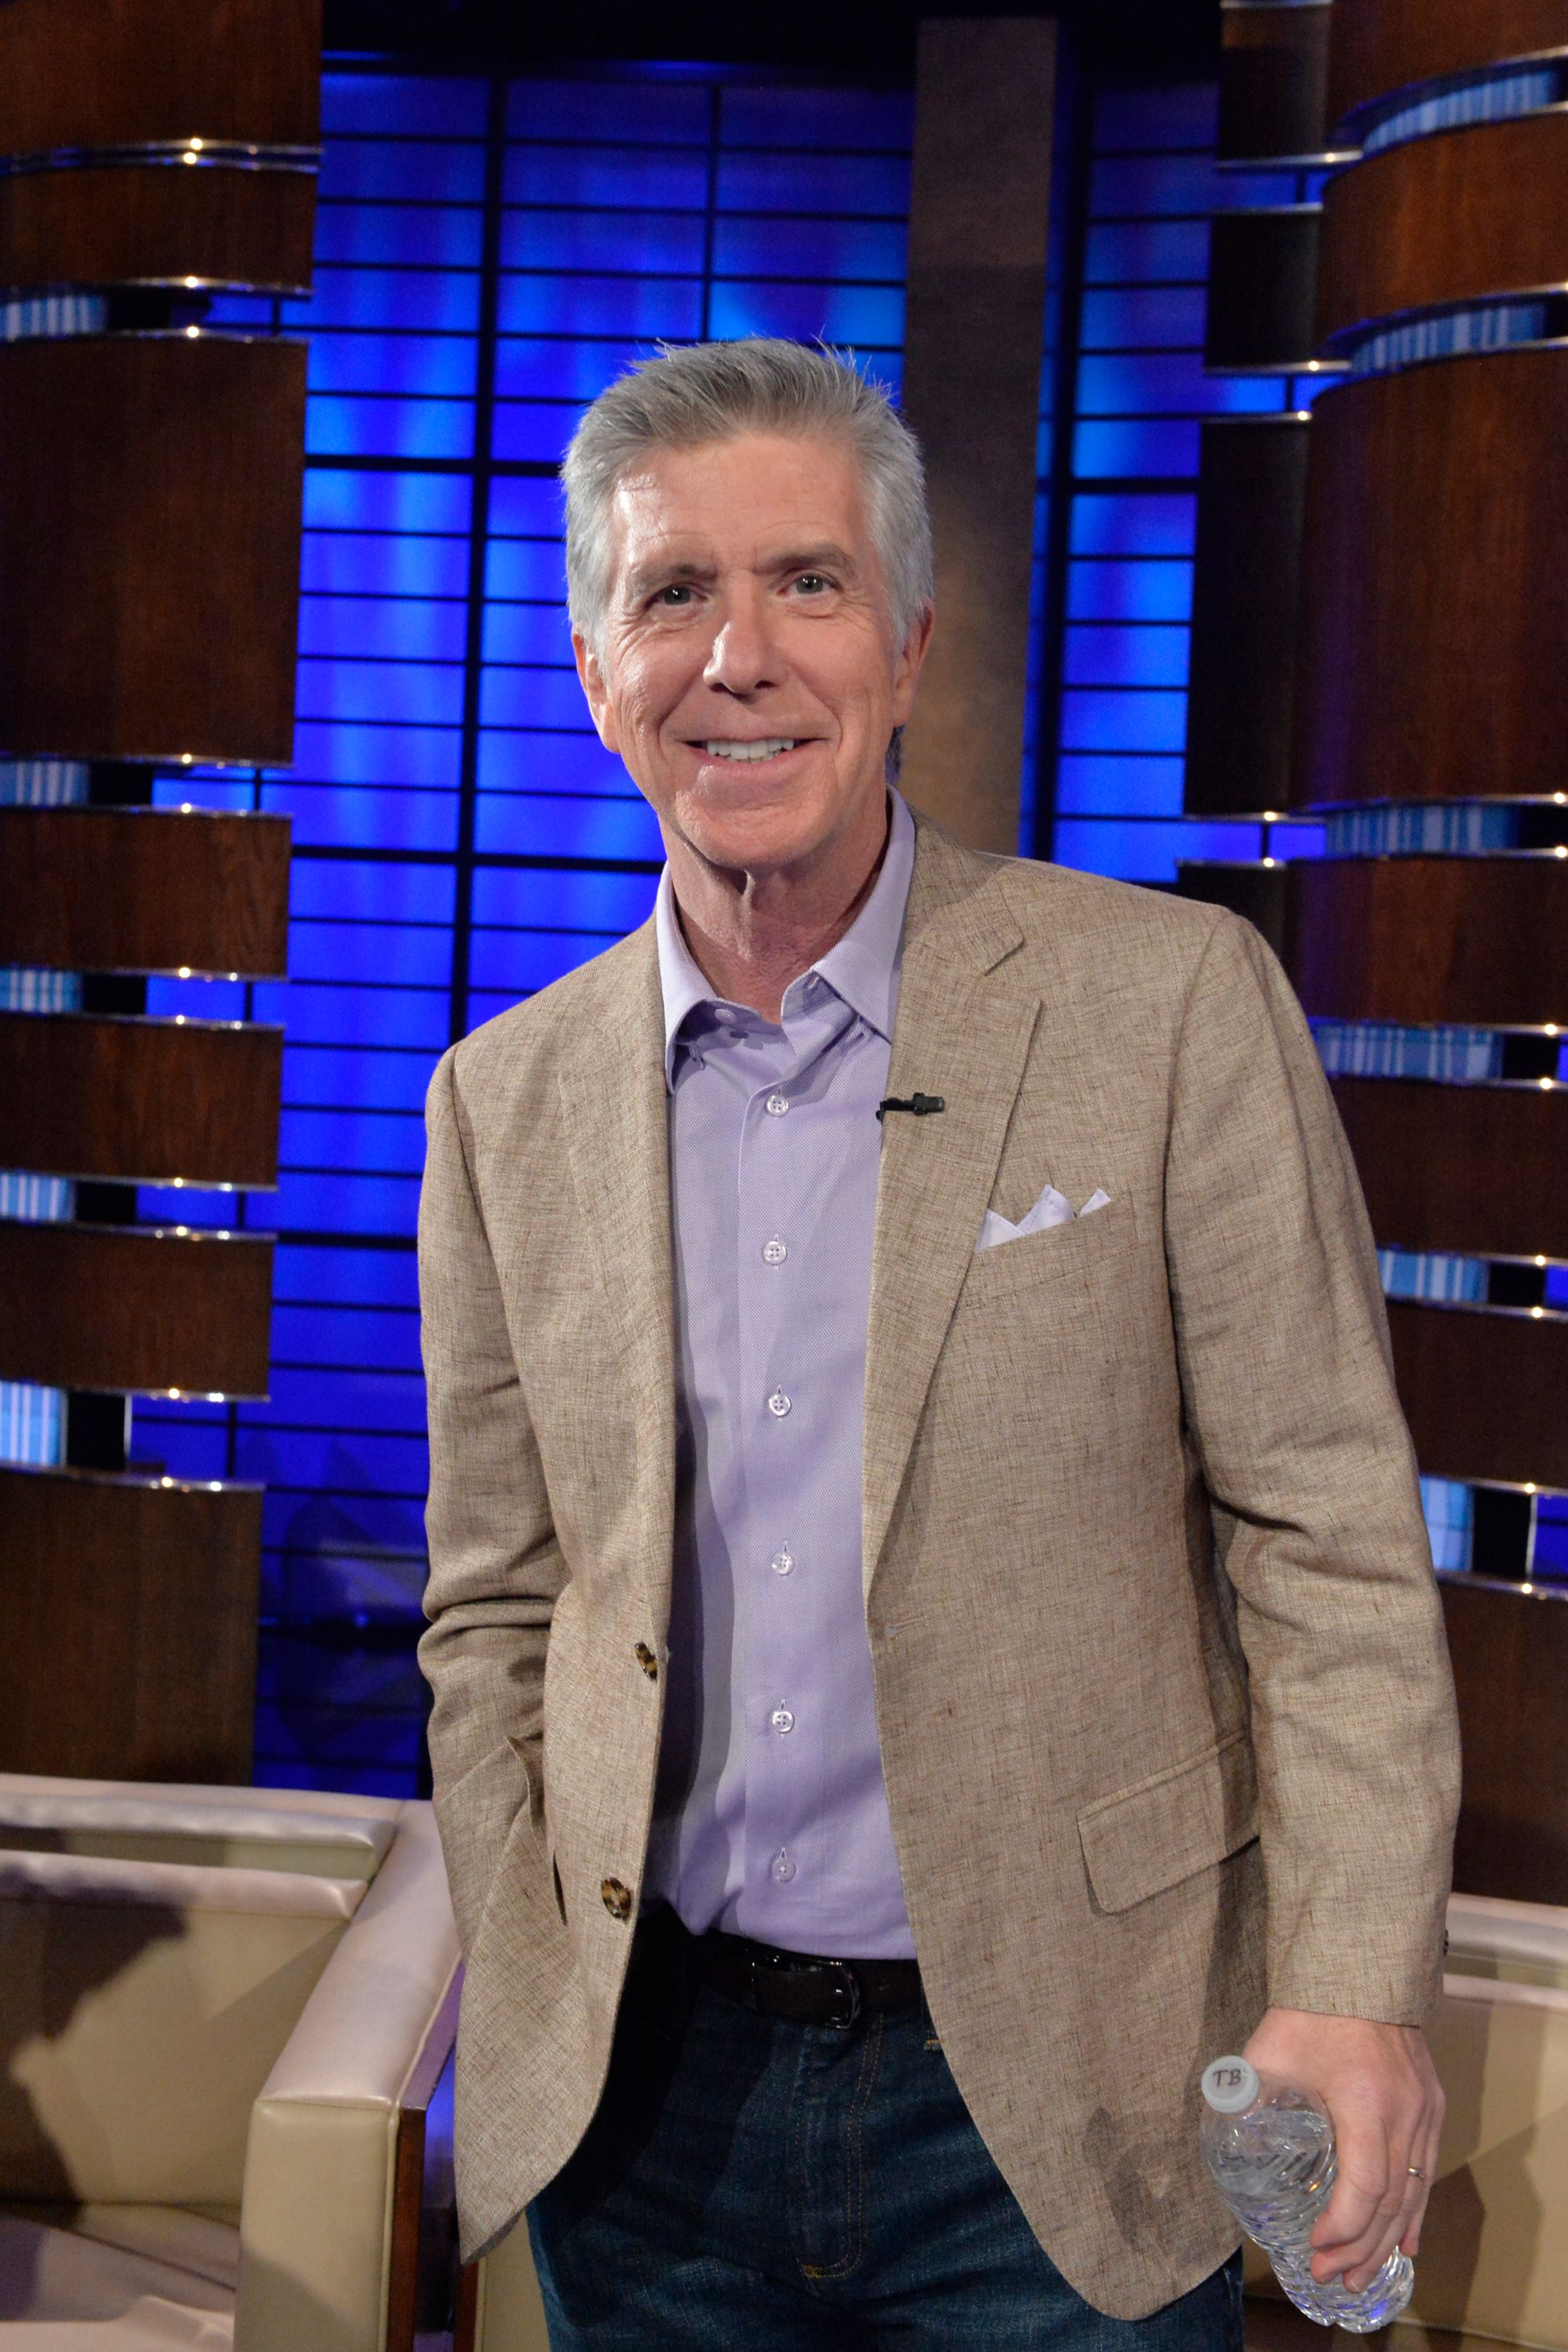 """Tom Bergeronon the set of """"To Tell The Truth,"""" on November 13, 2016 